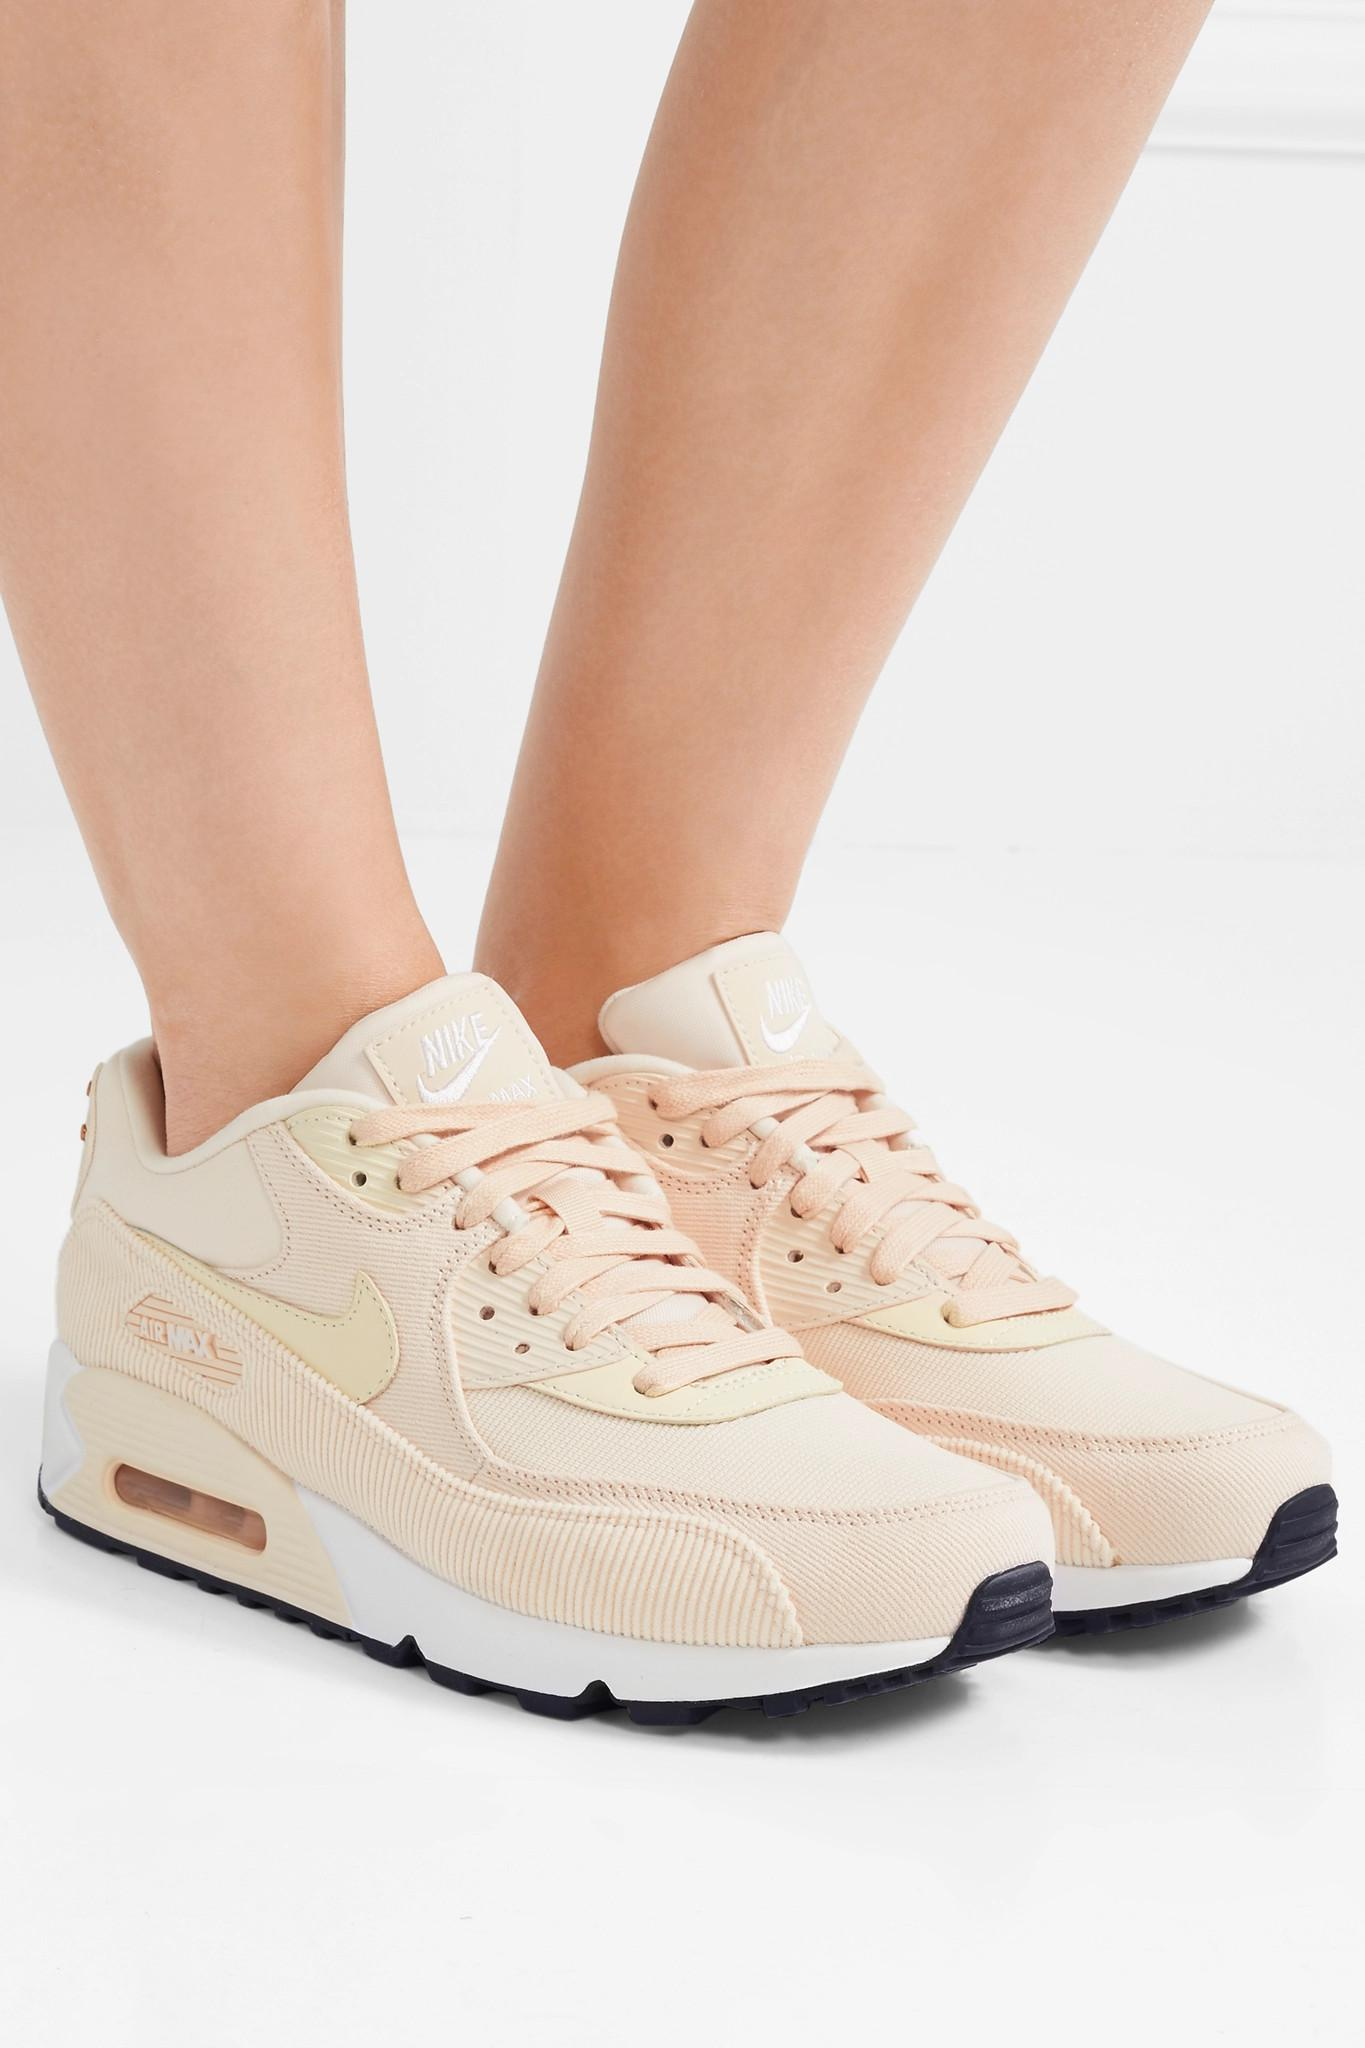 best sneakers 27ae2 1f49f Nike Air Max 90 Leather, Corduroy And Mesh Sneakers - Lyst